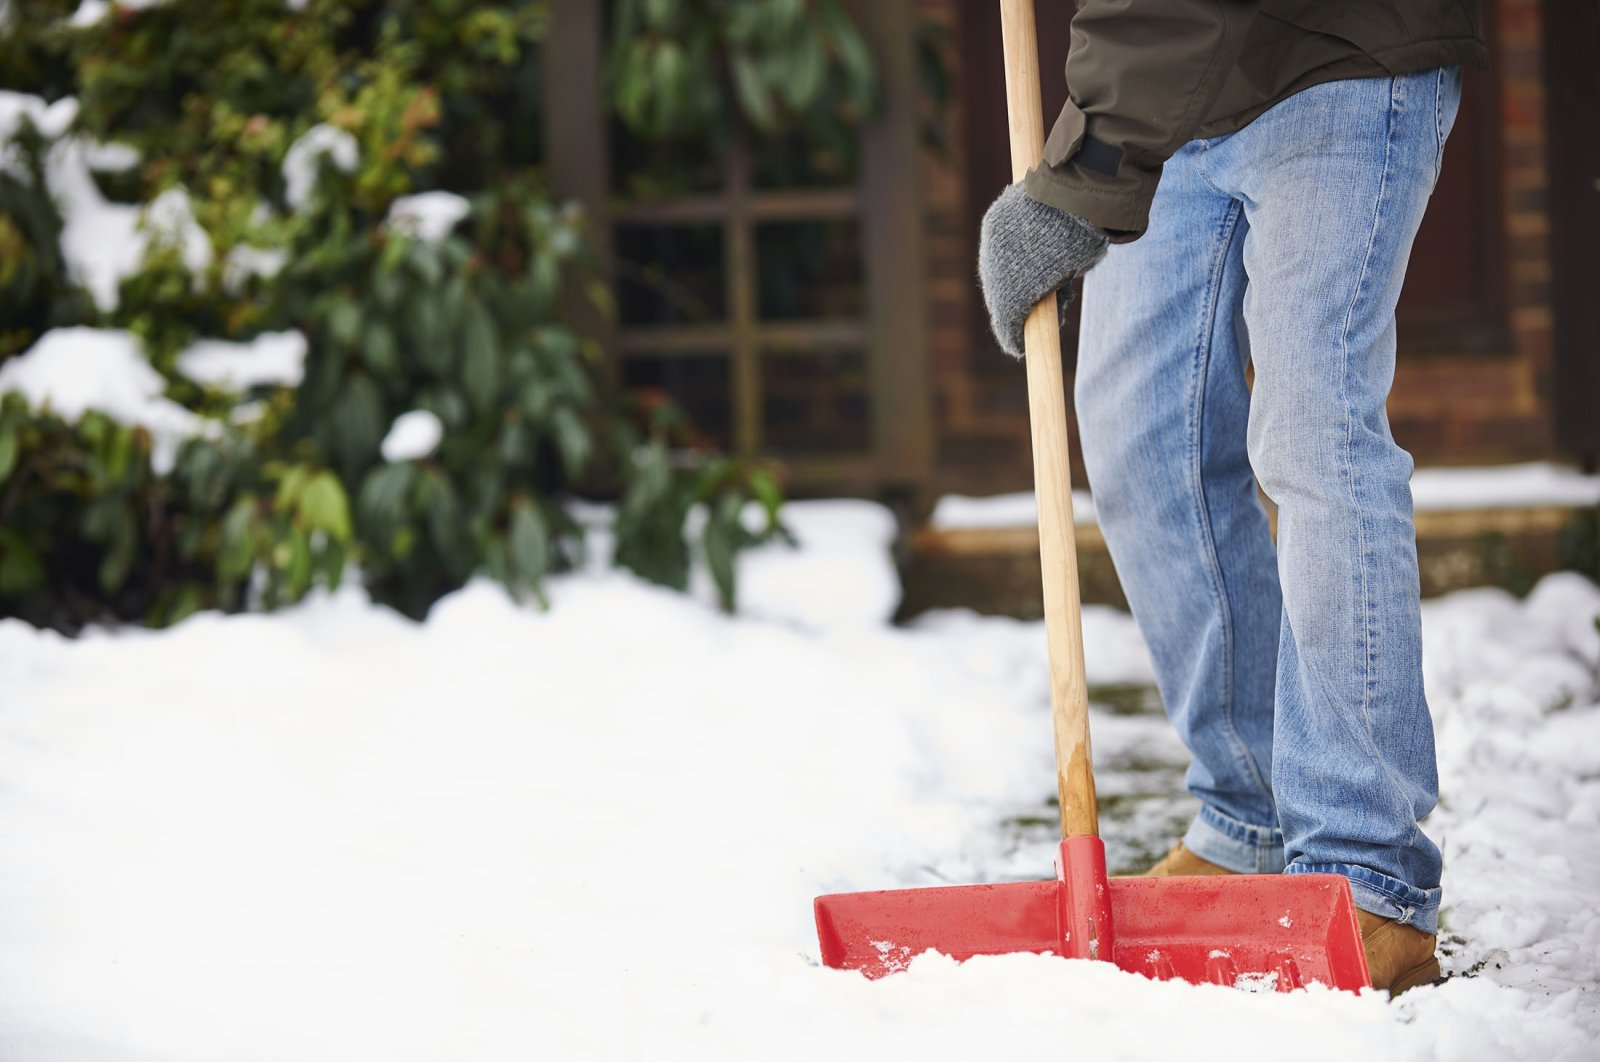 Trying to lift a shovel full of snow is asking for injury. (Shutterstock Photo)